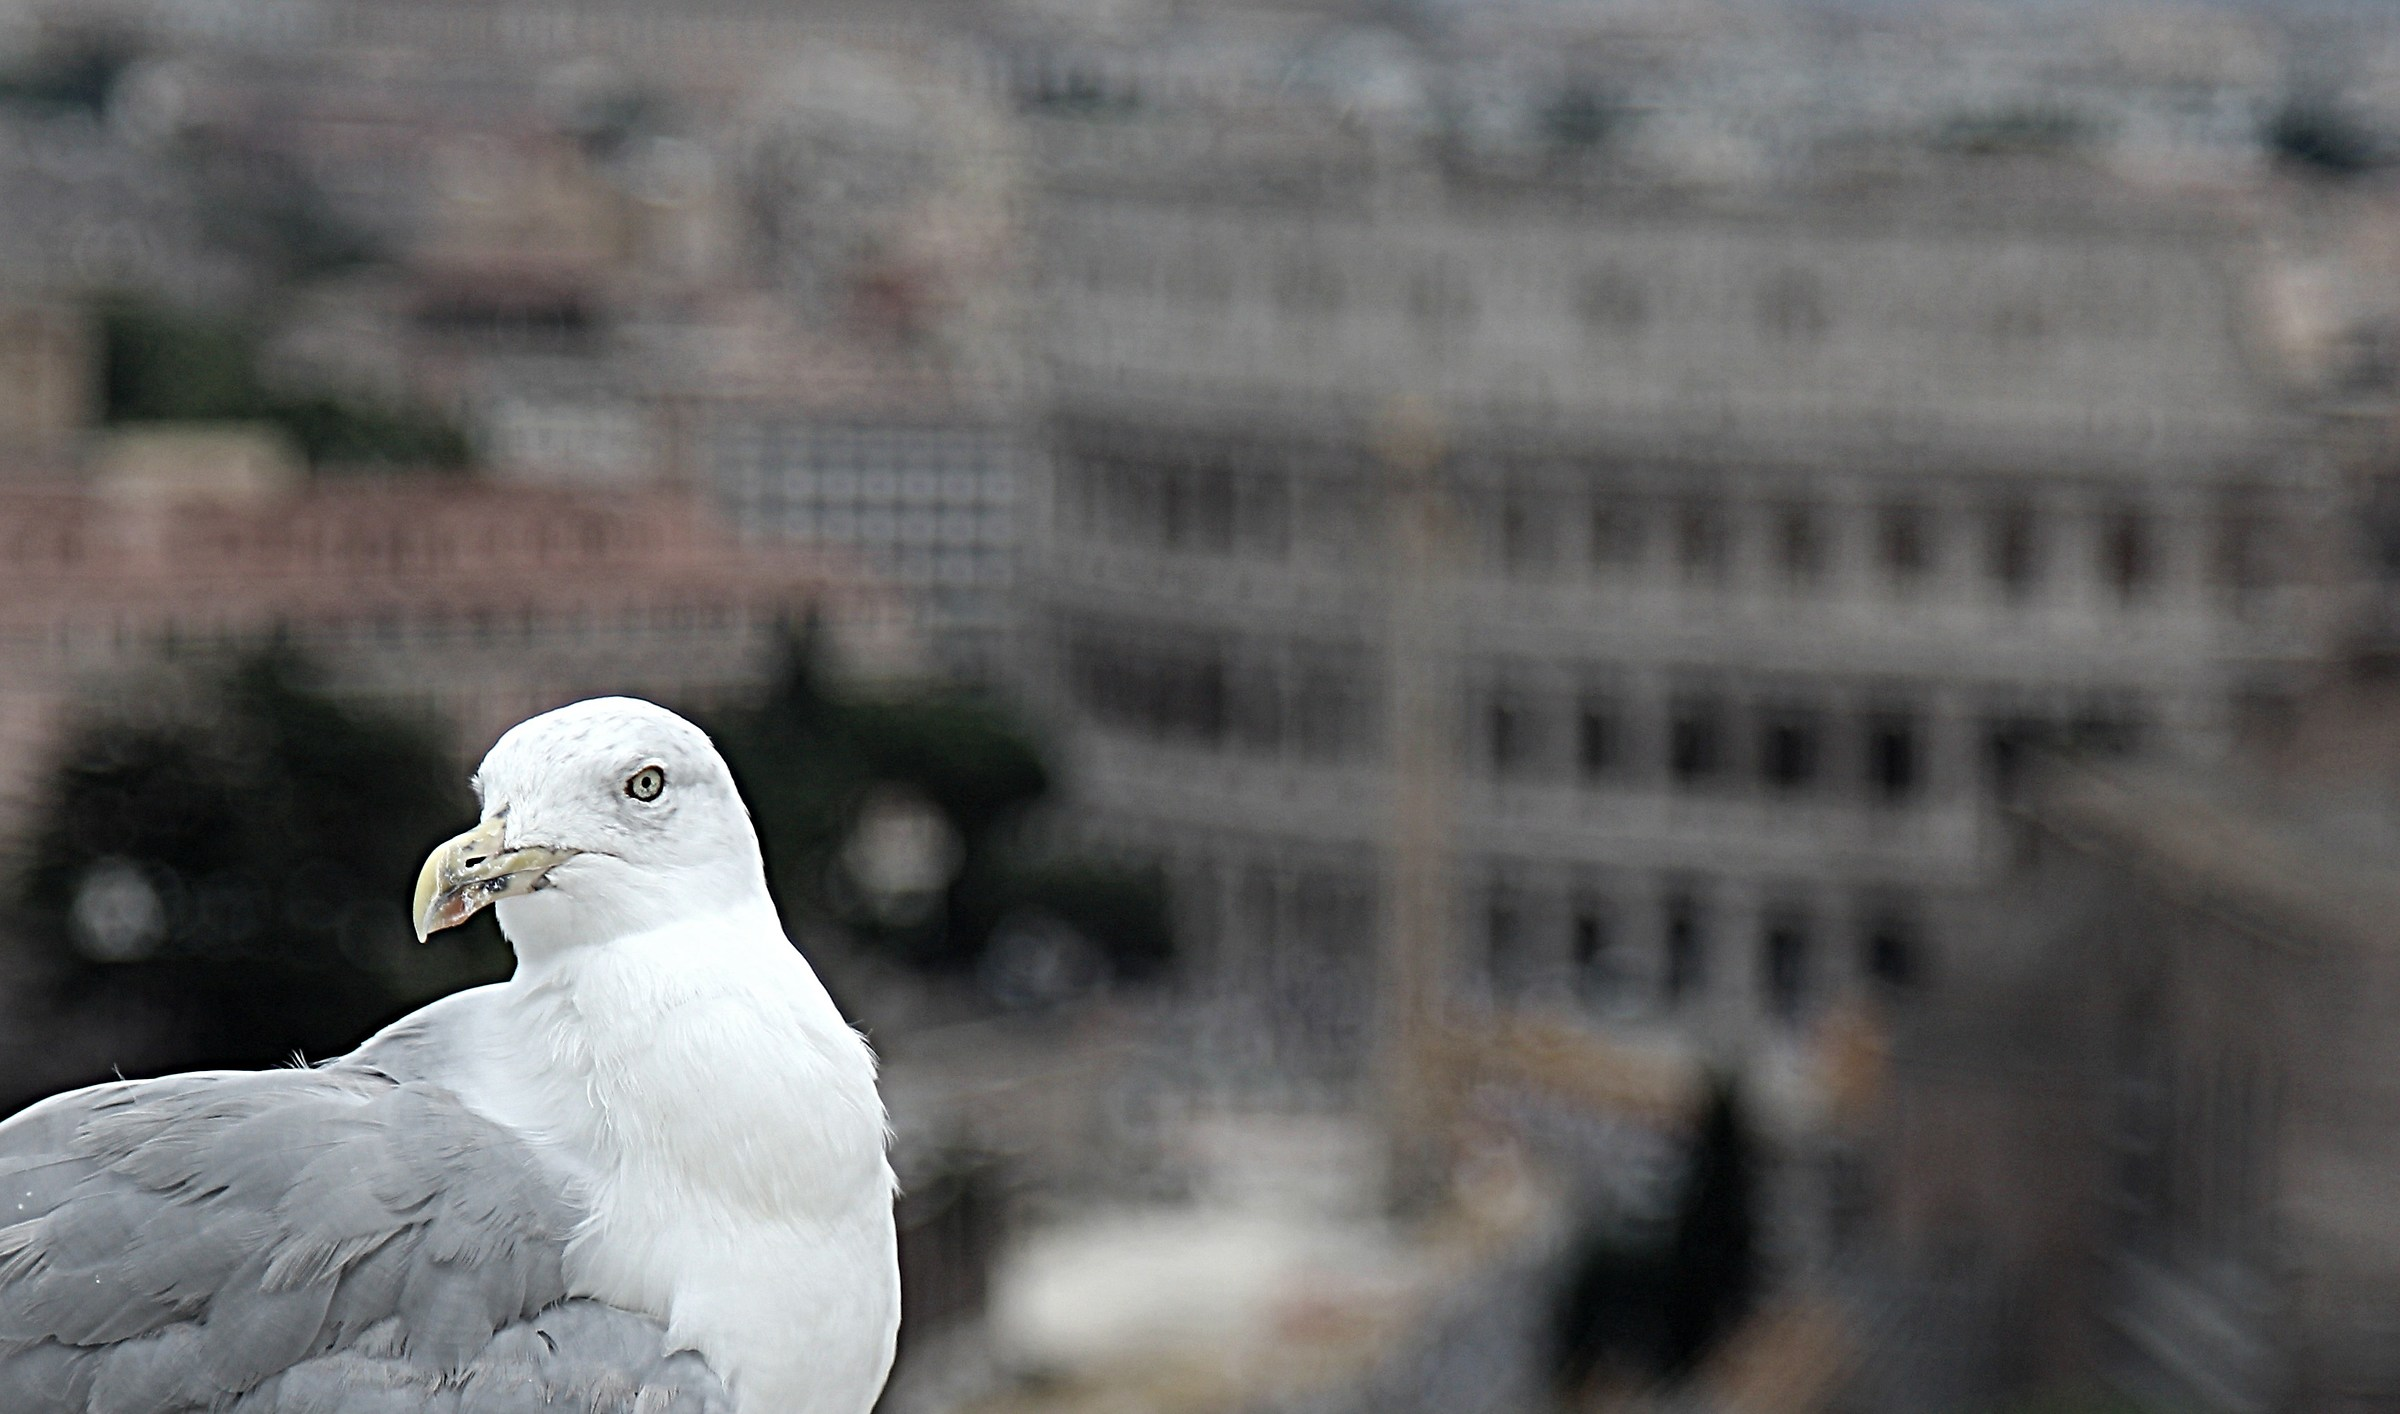 The Warden of the Colosseum...